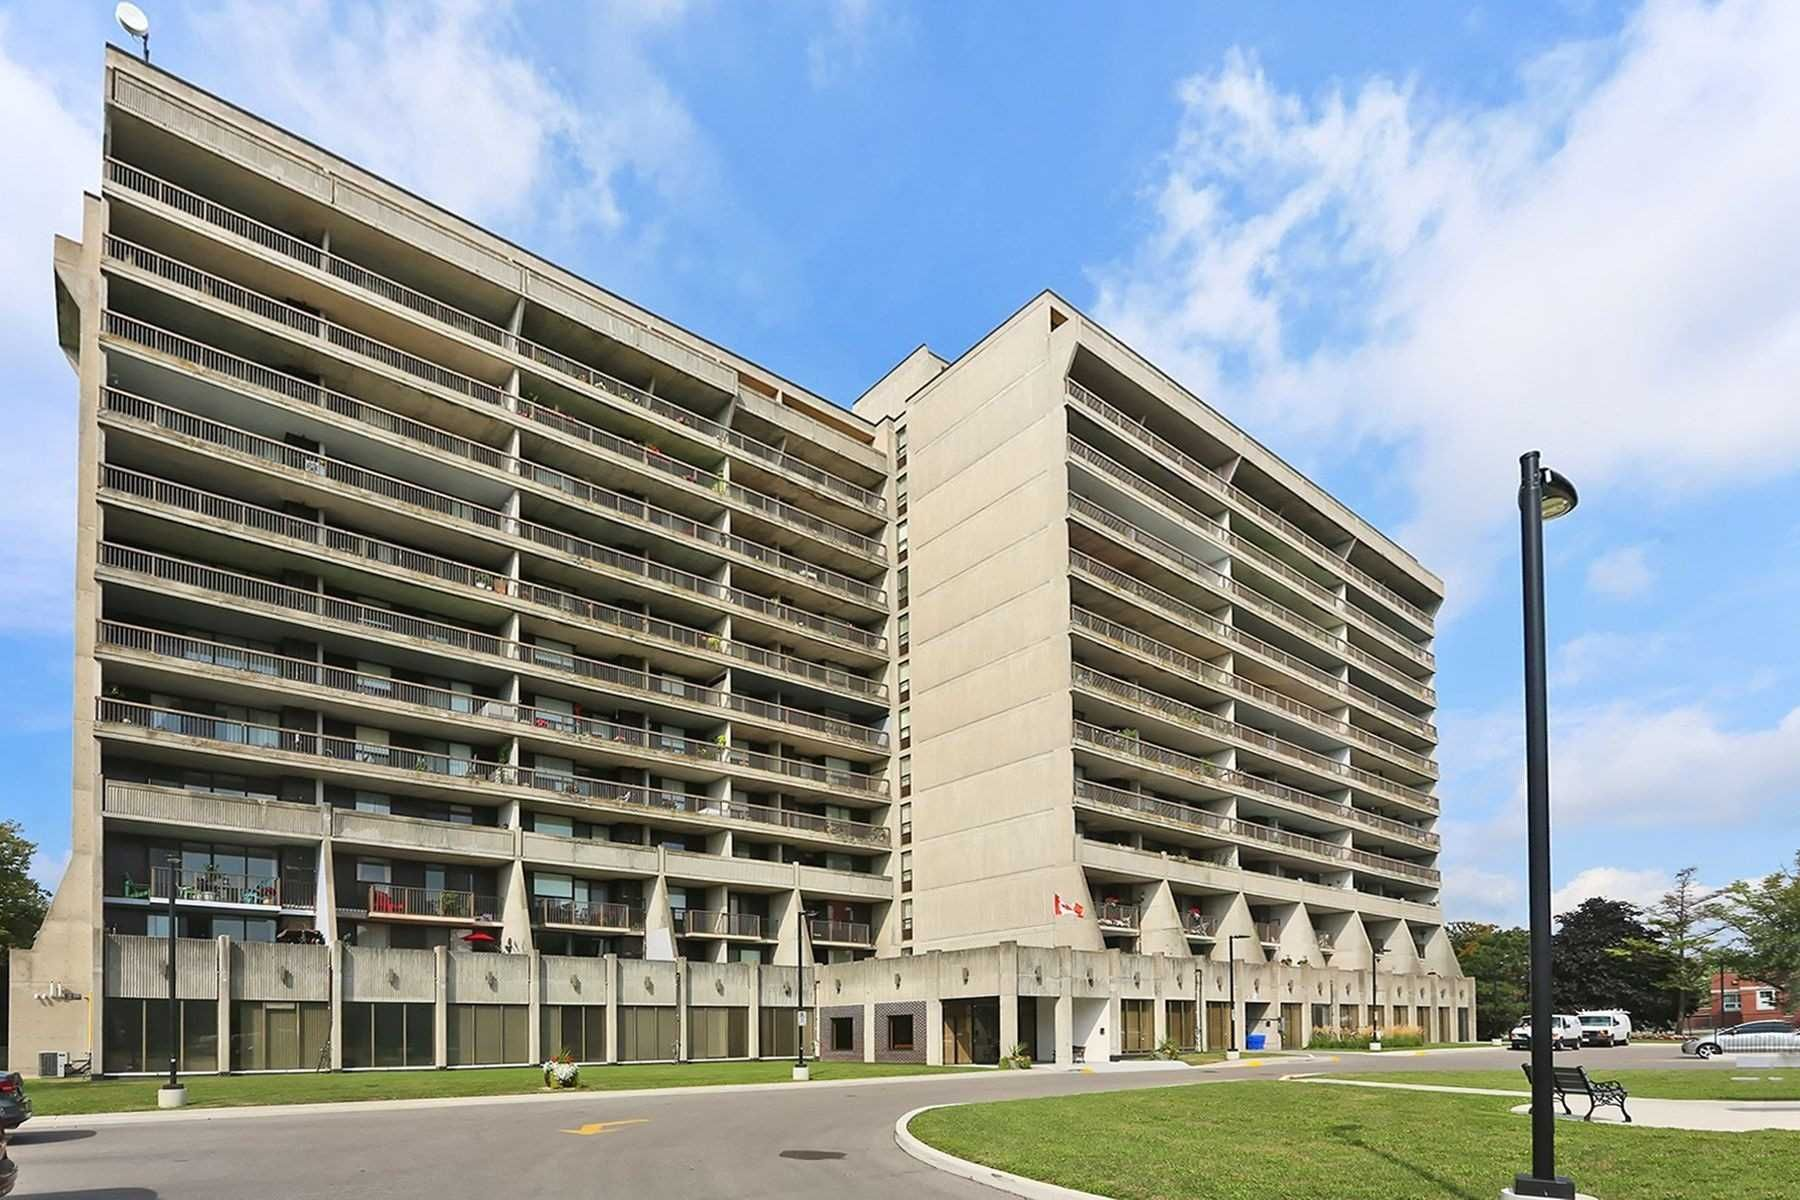 92 Church St S. This condo at Village Gardens Condos is located in Central West, Ajax